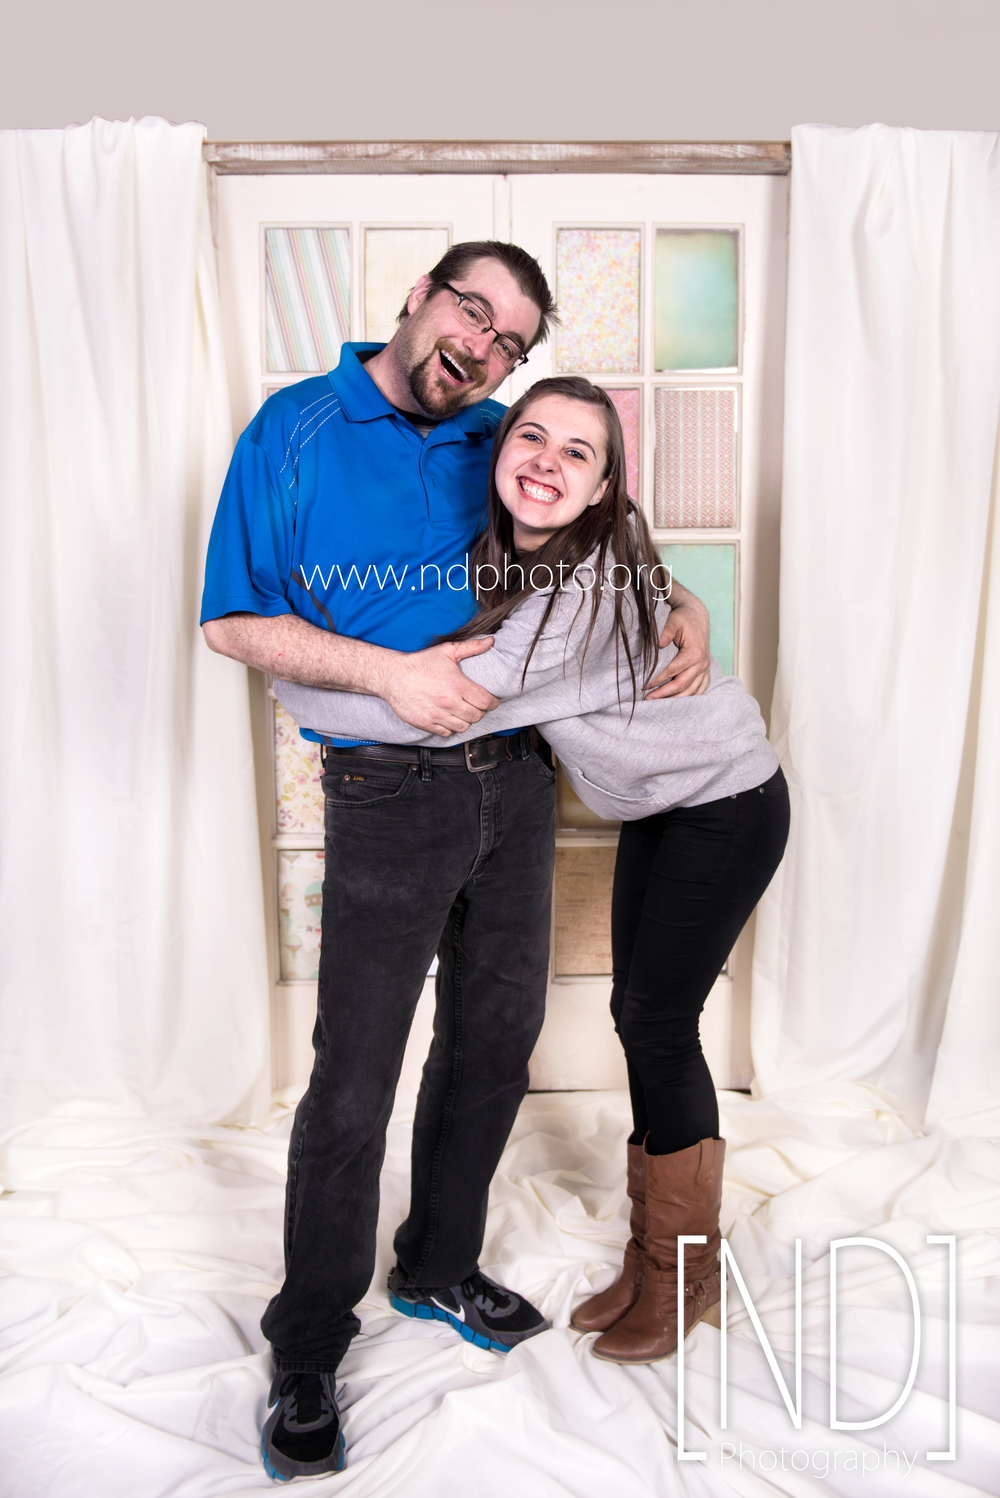 Kaylee and her daddy, Chris Carney (owner of Premier Sound and Entertainment DJ and karaoke service), at the father daughter dance on March 20th, 2015.